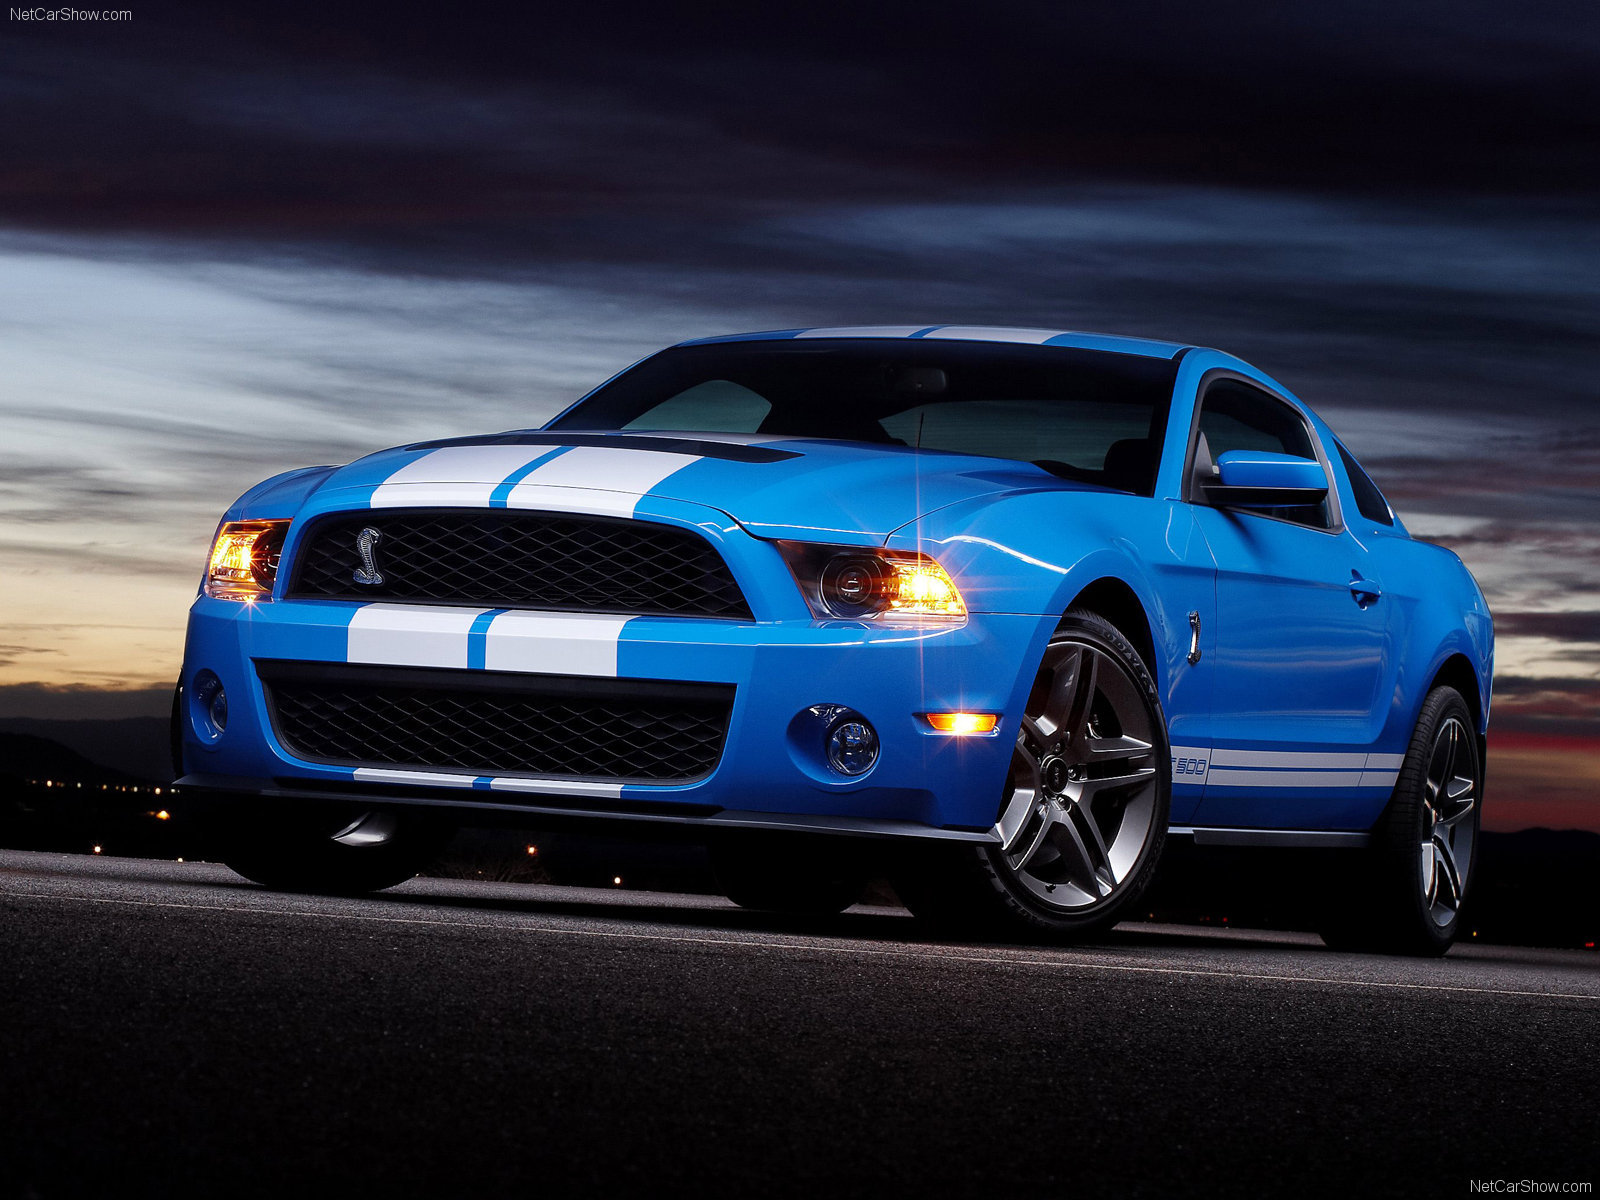 Ford Mustang Shelby GT500 photo 60627